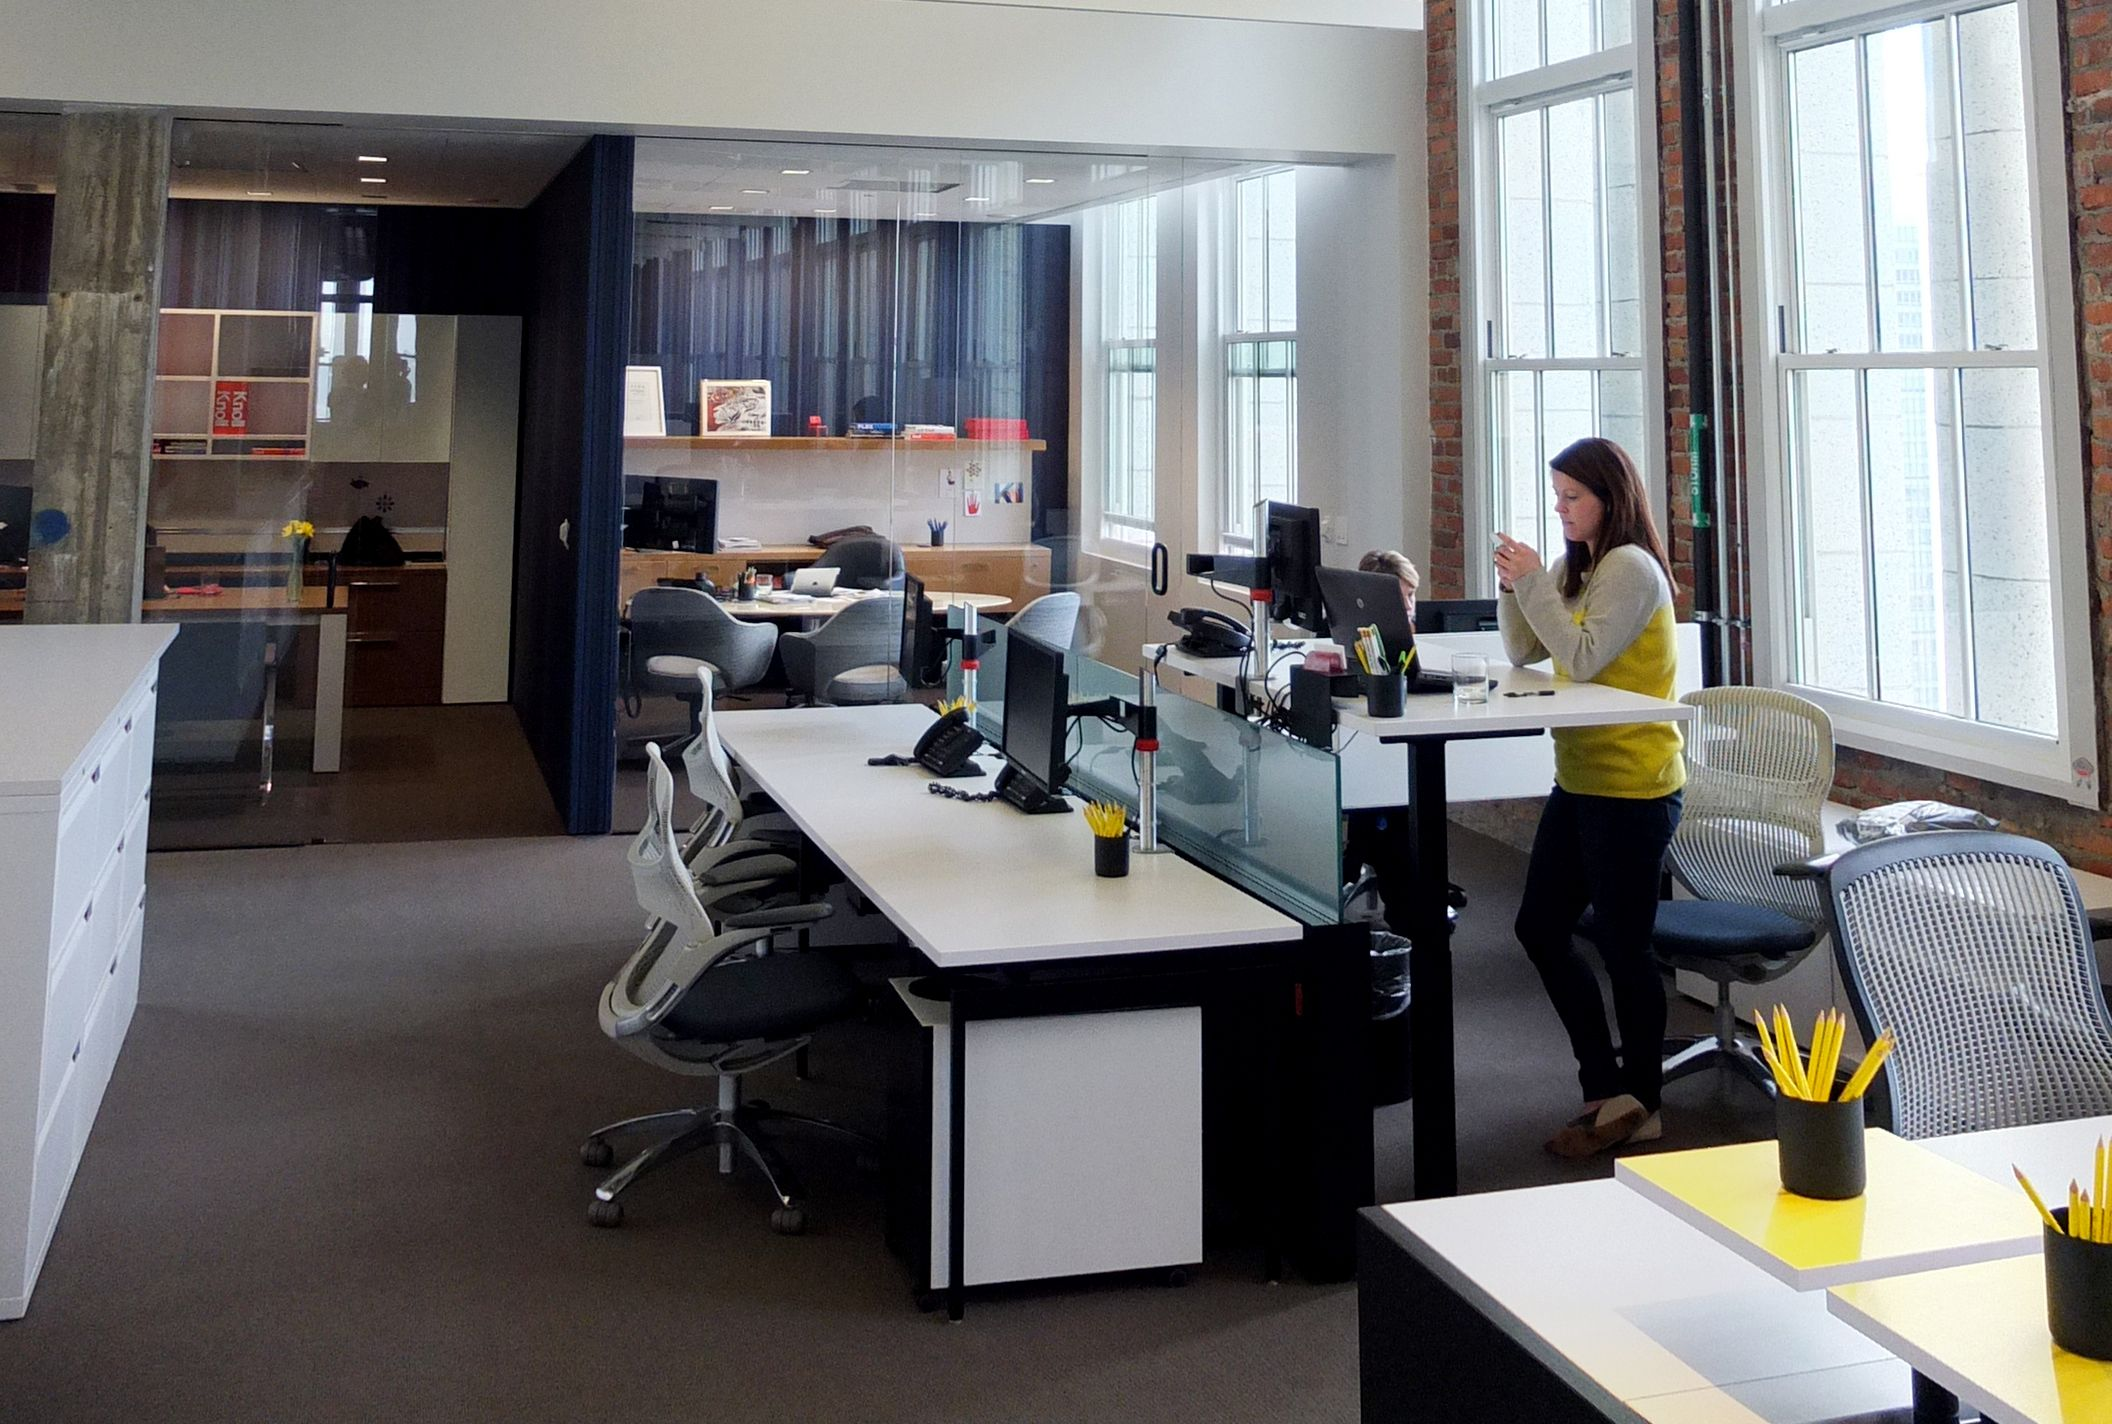 Height Adjustable Desks Give Knoll San Francisco Employees